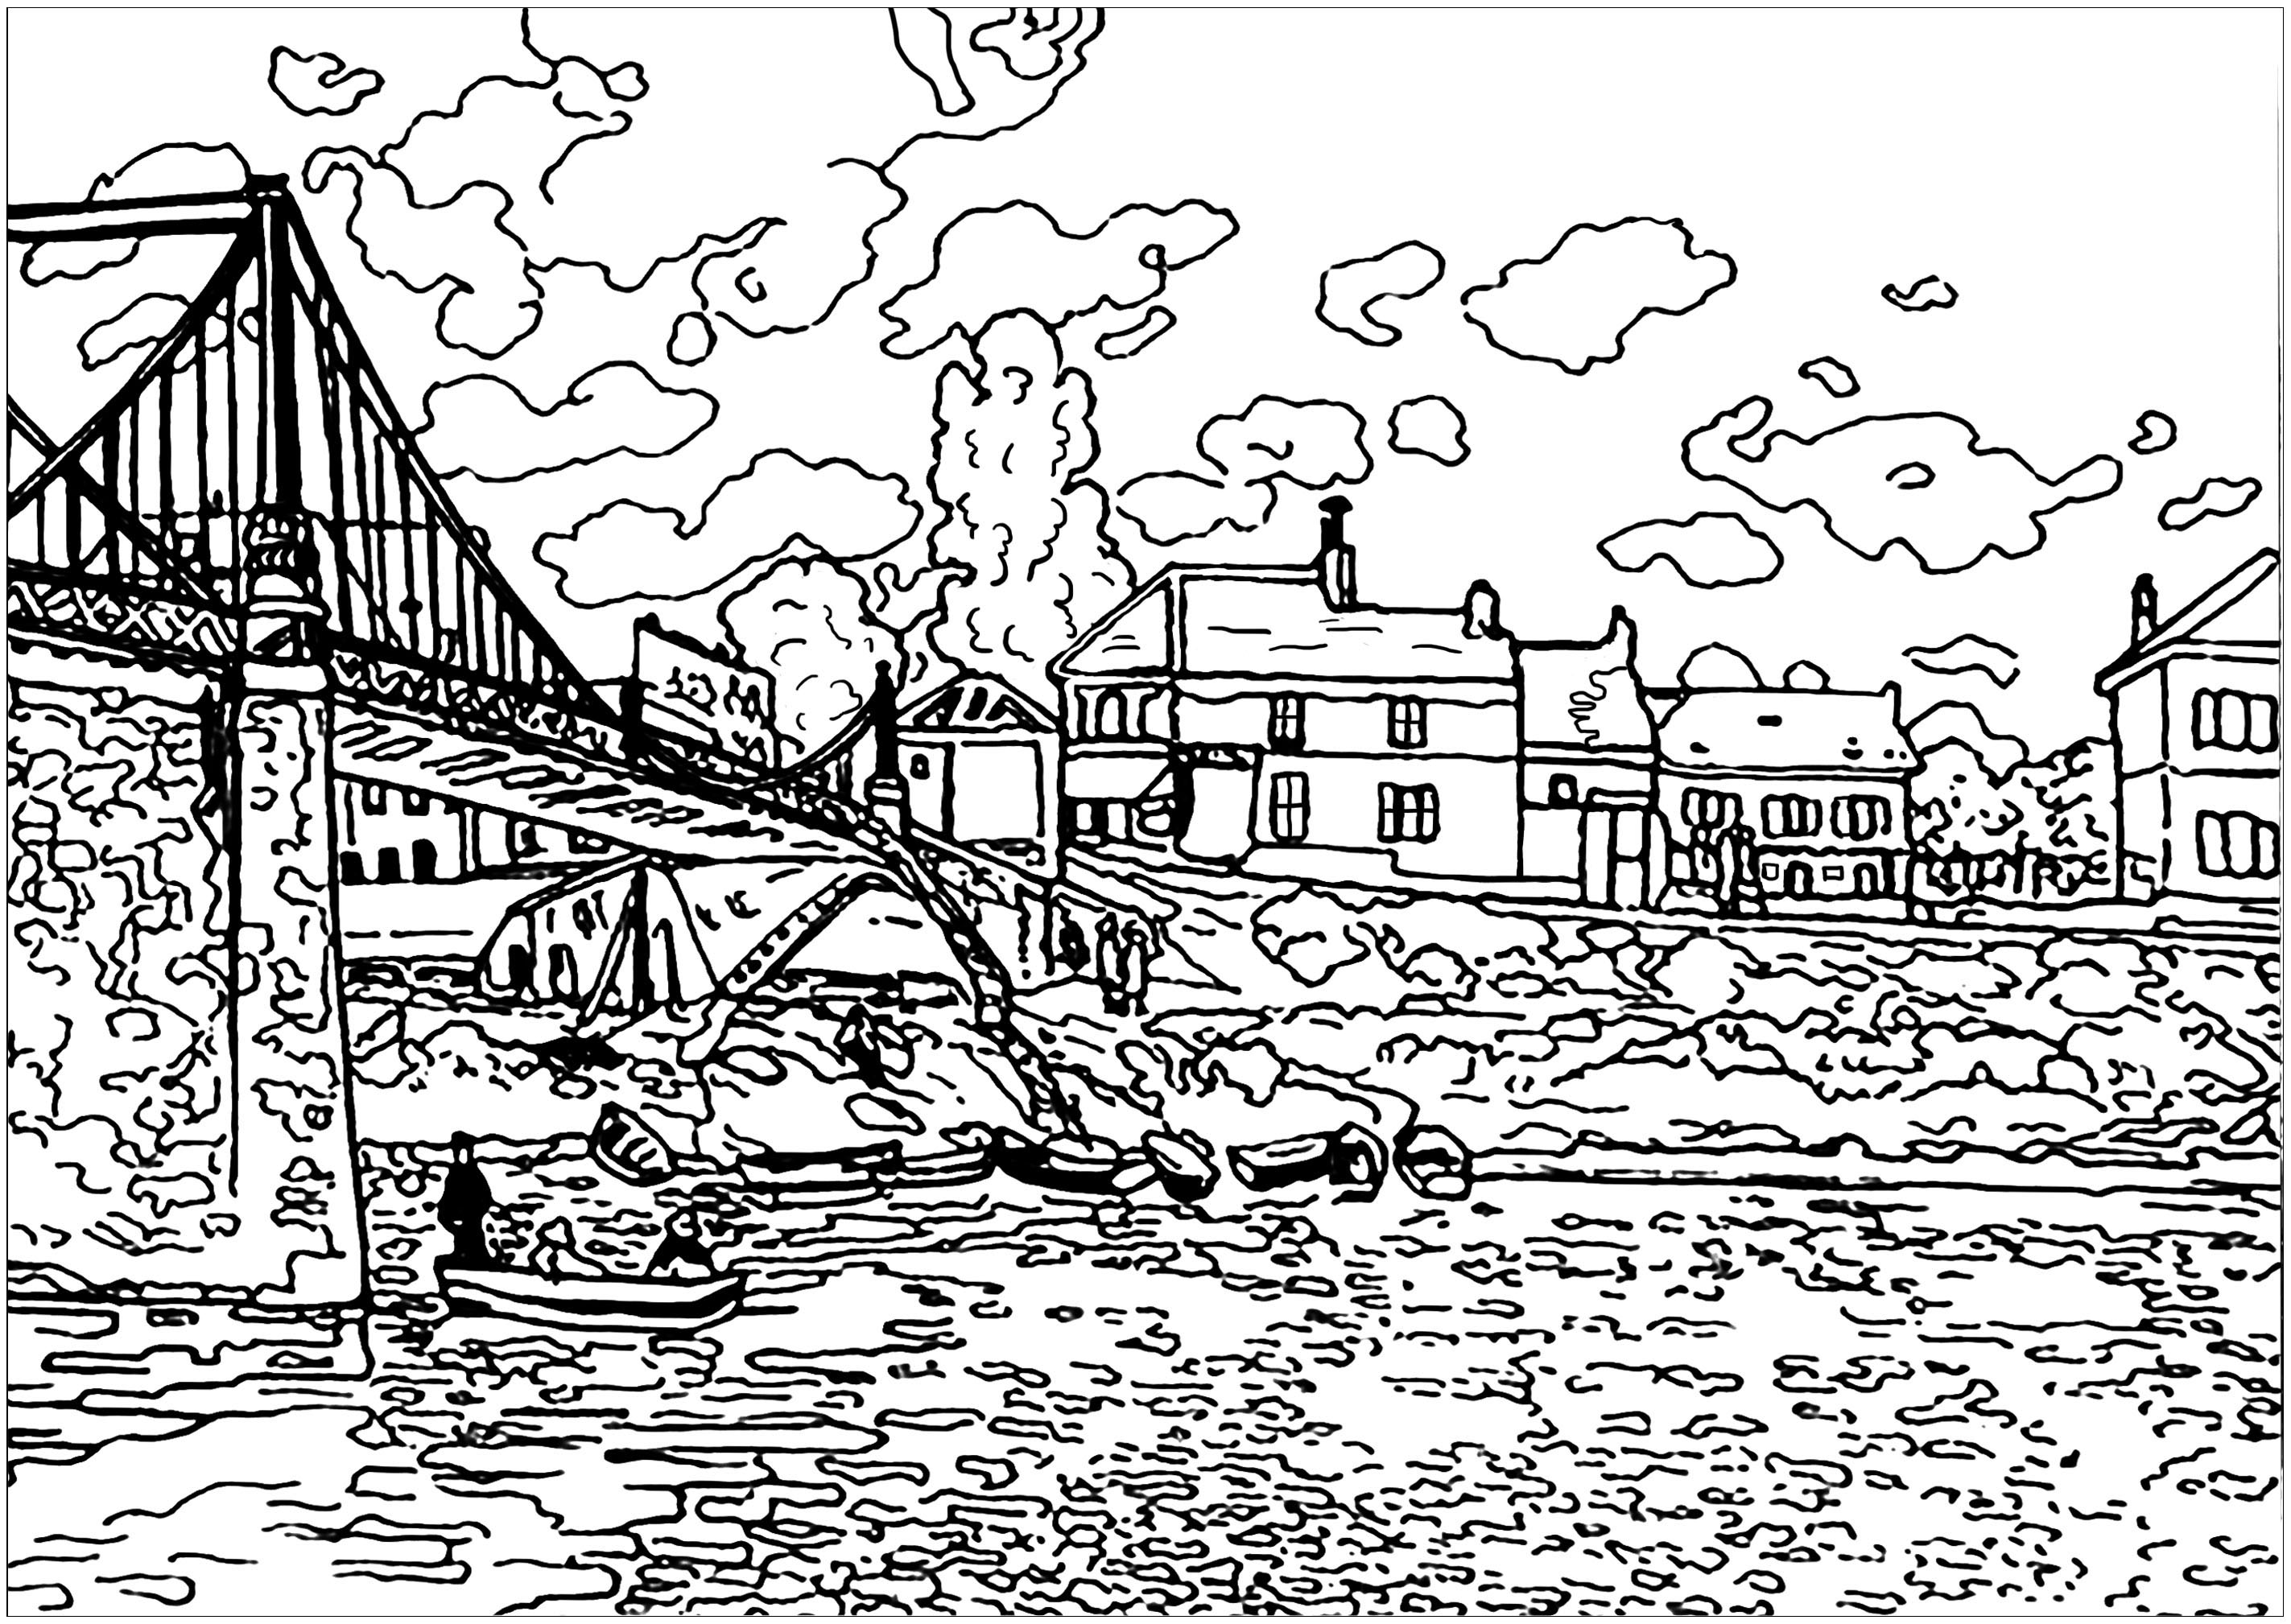 Coloring page created from a painting by alfred sisley famous french impressionist landscape painter